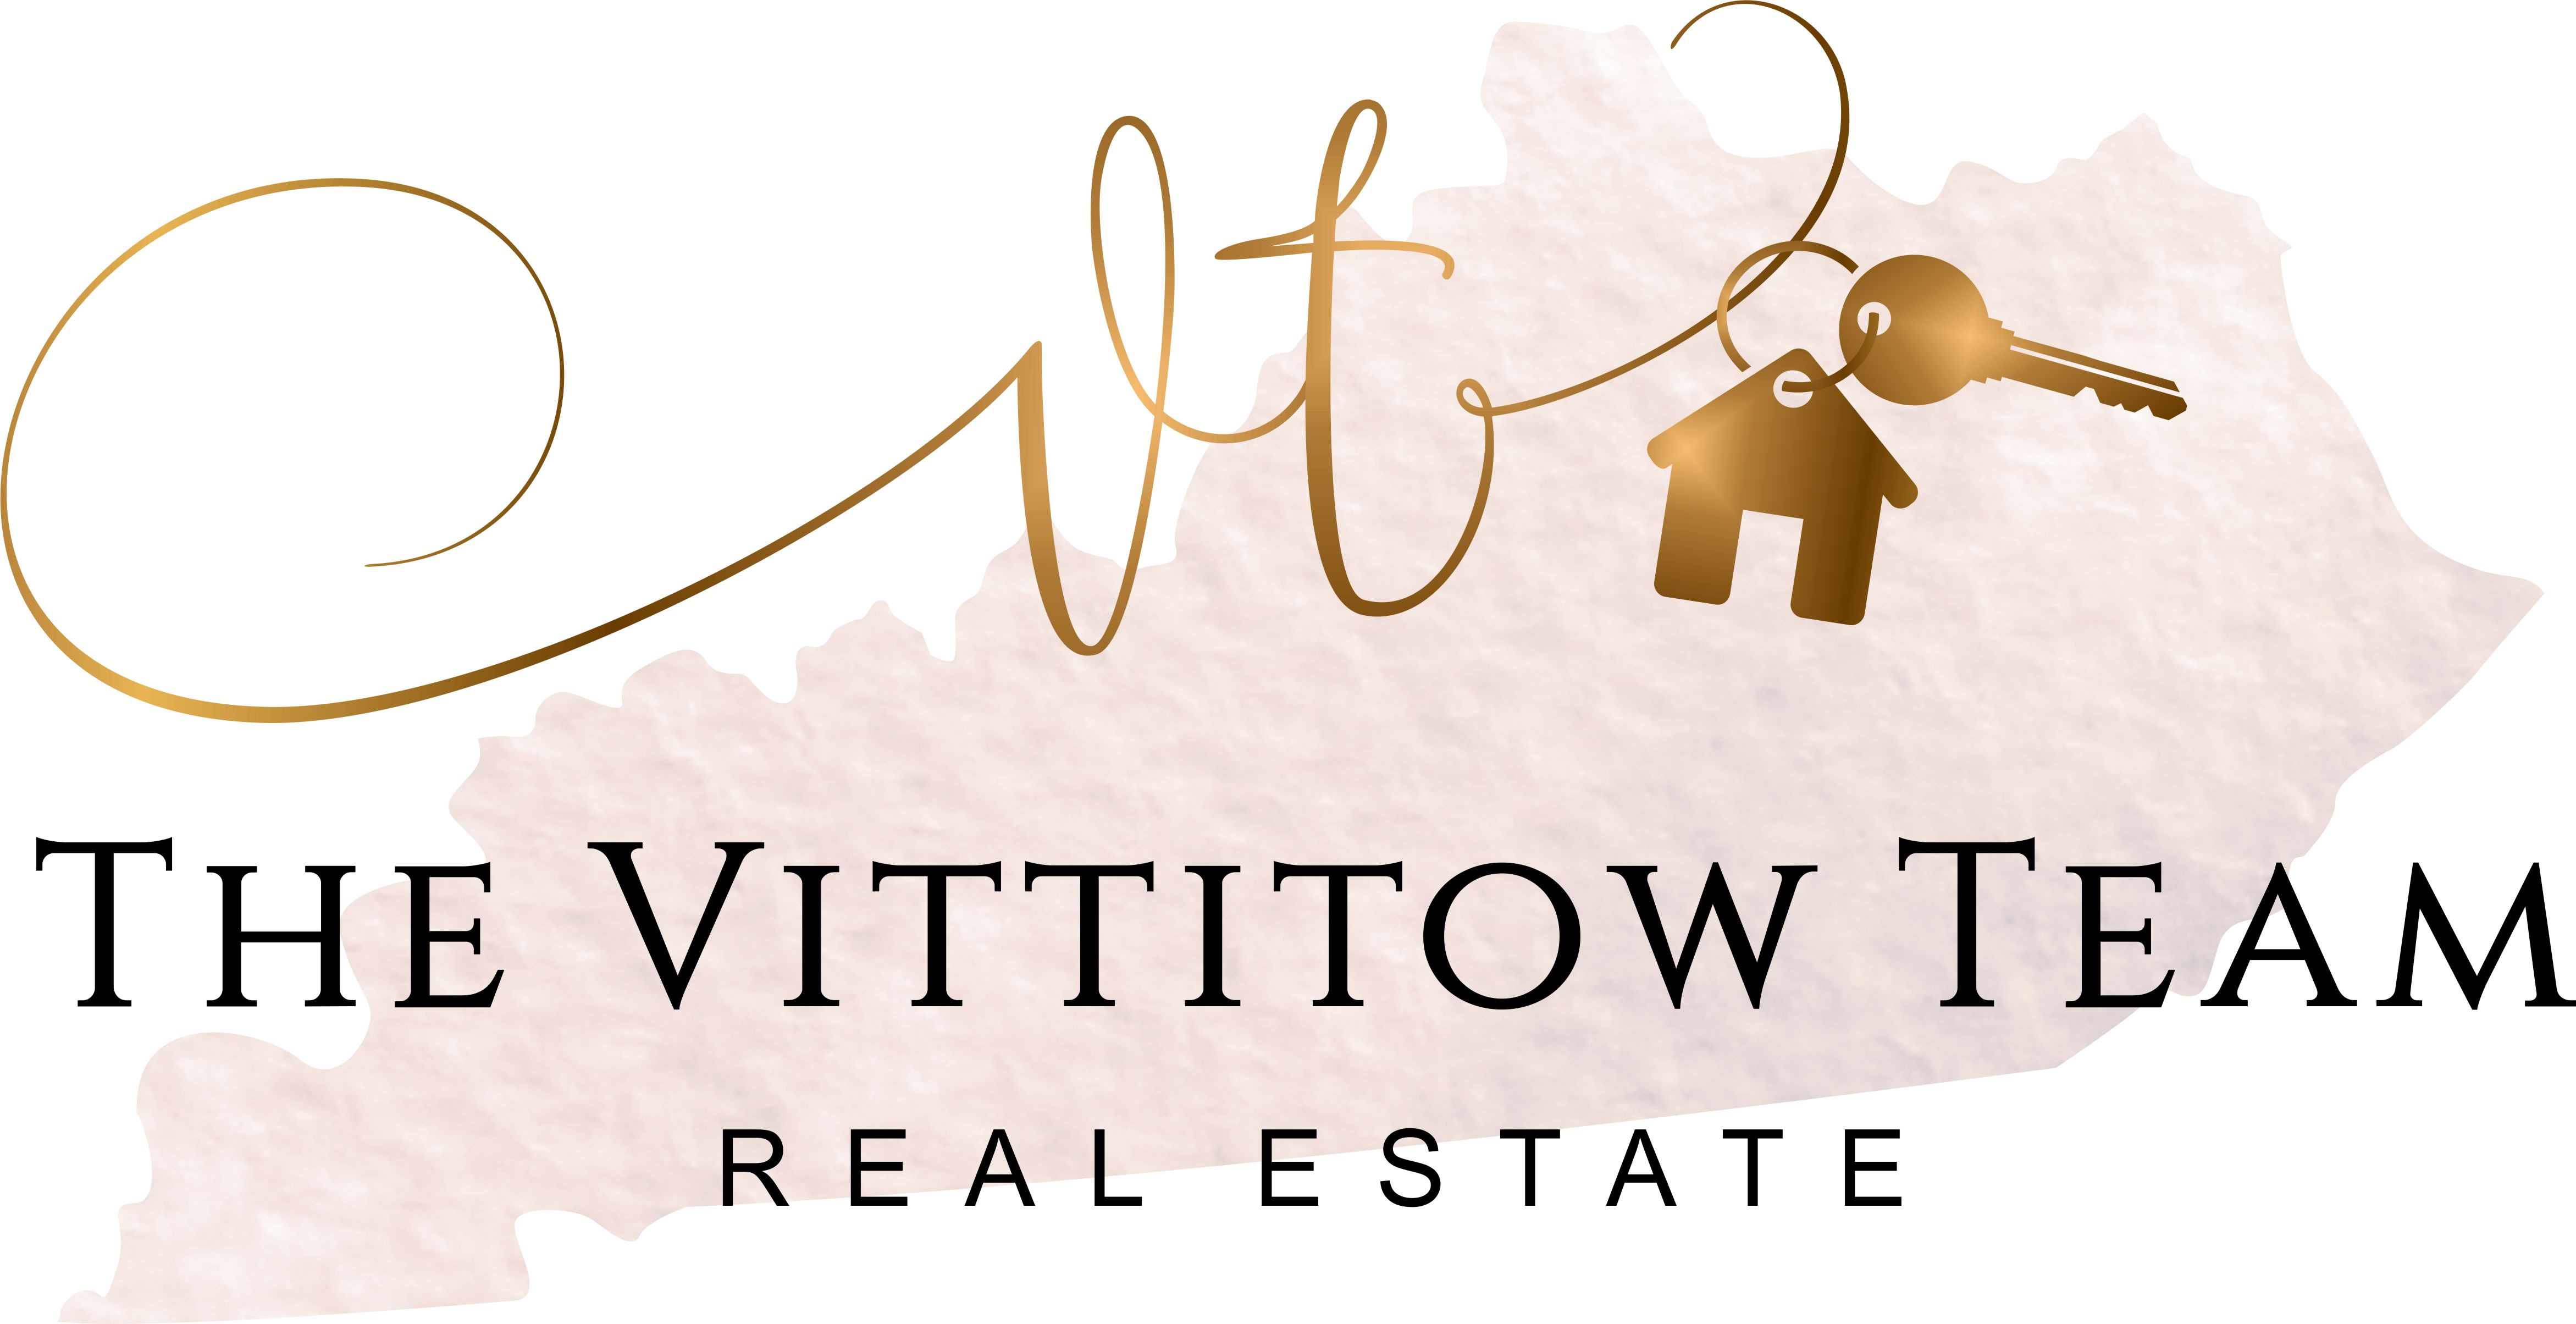 The Vittitow Team